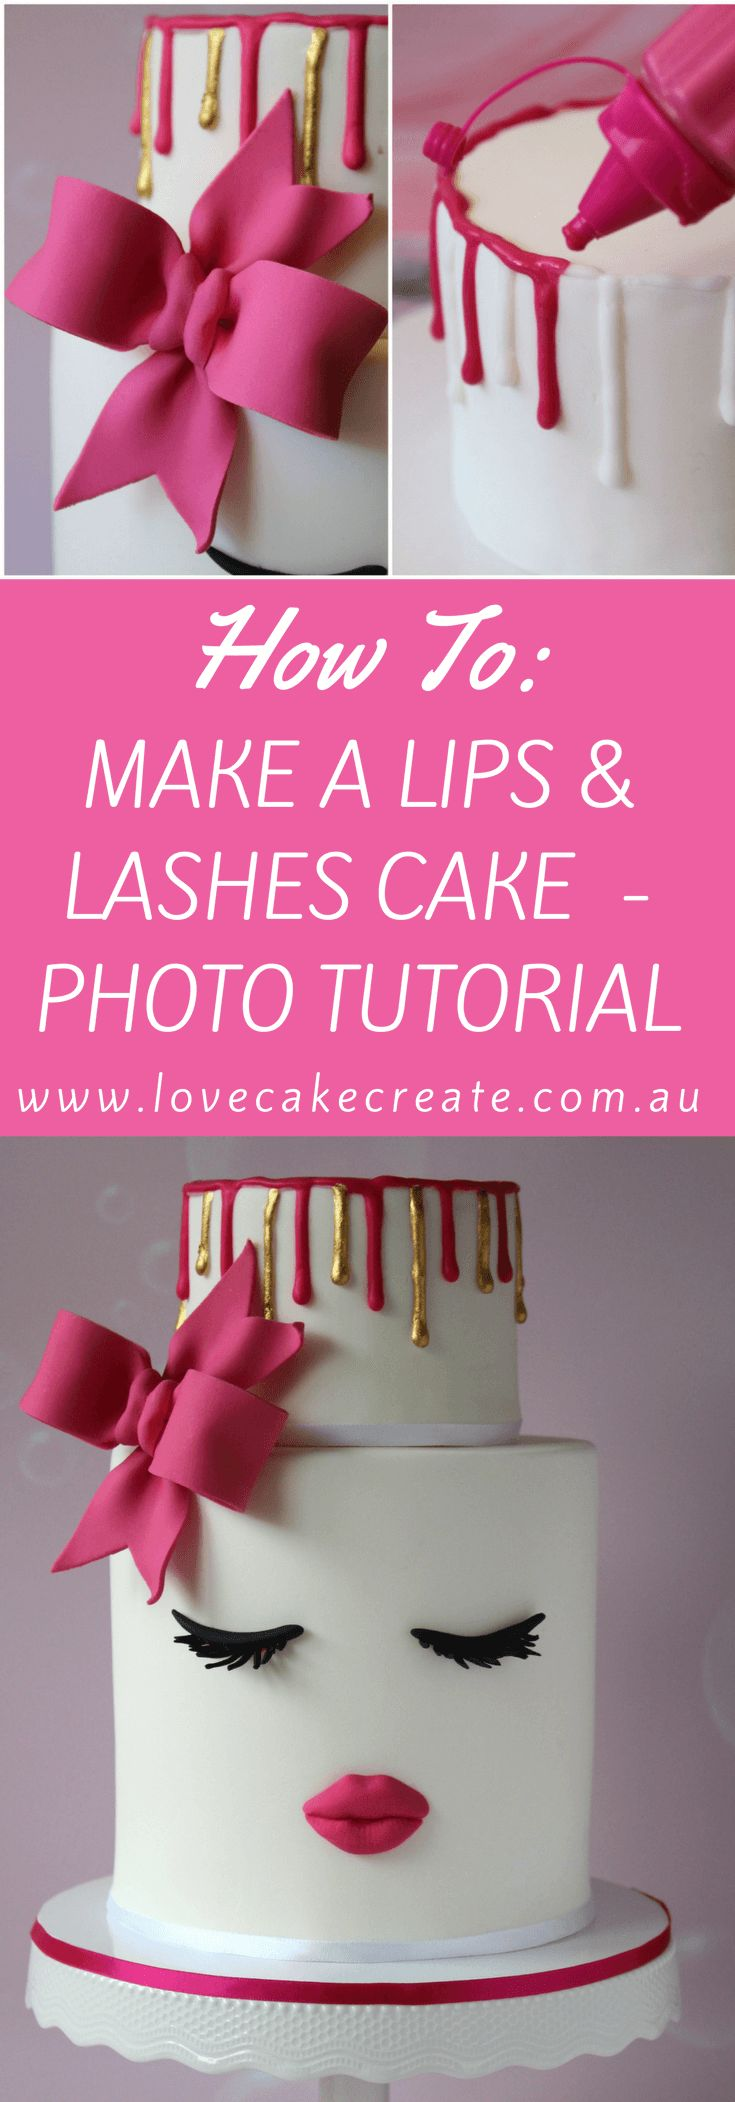 How to make a lips and lashes cake – by